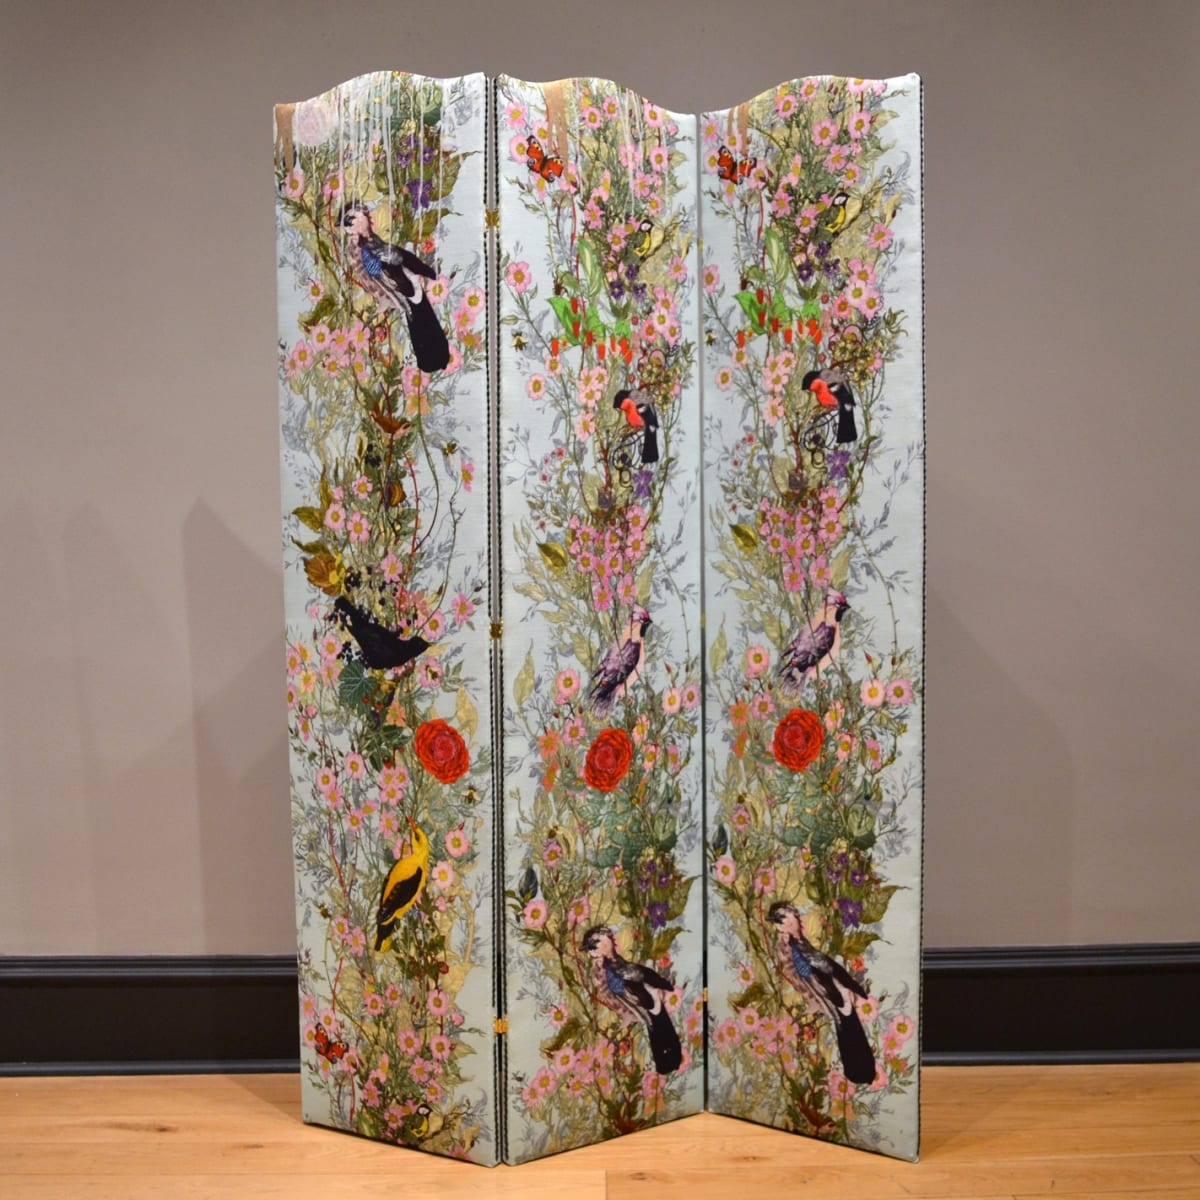 Timorous Beasties Fruit Looters Pale Blue, 2019 folding screen upholstered in Fruit Looters fabric with one-off screen print design 167 x 114 cm (3 panels, 38 cm width each)